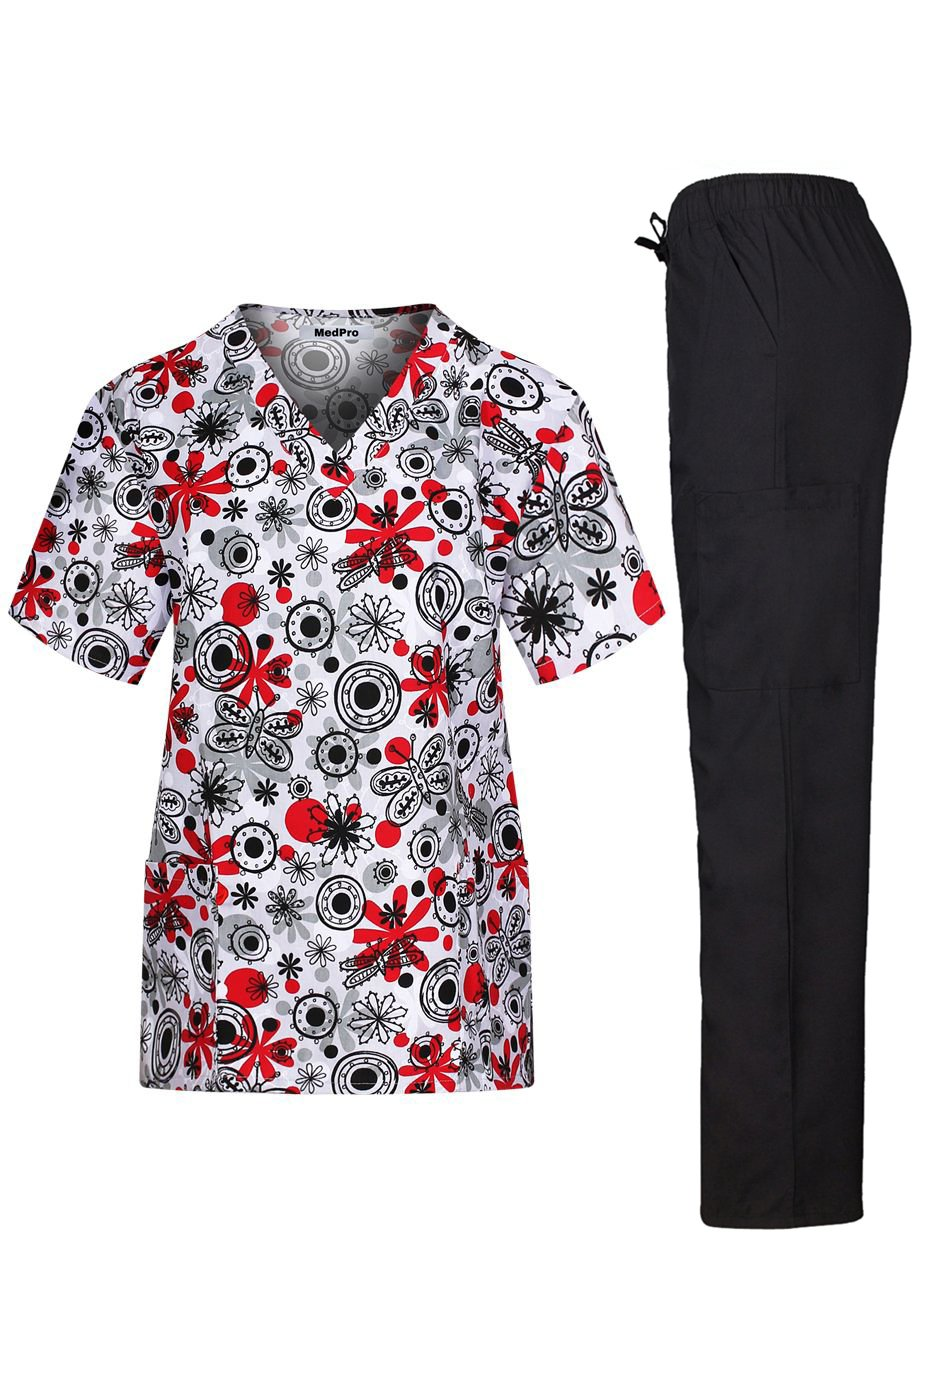 MedPro Women's Medical Scrub Set with V Neck Top and Cargo Pants Black Red XS